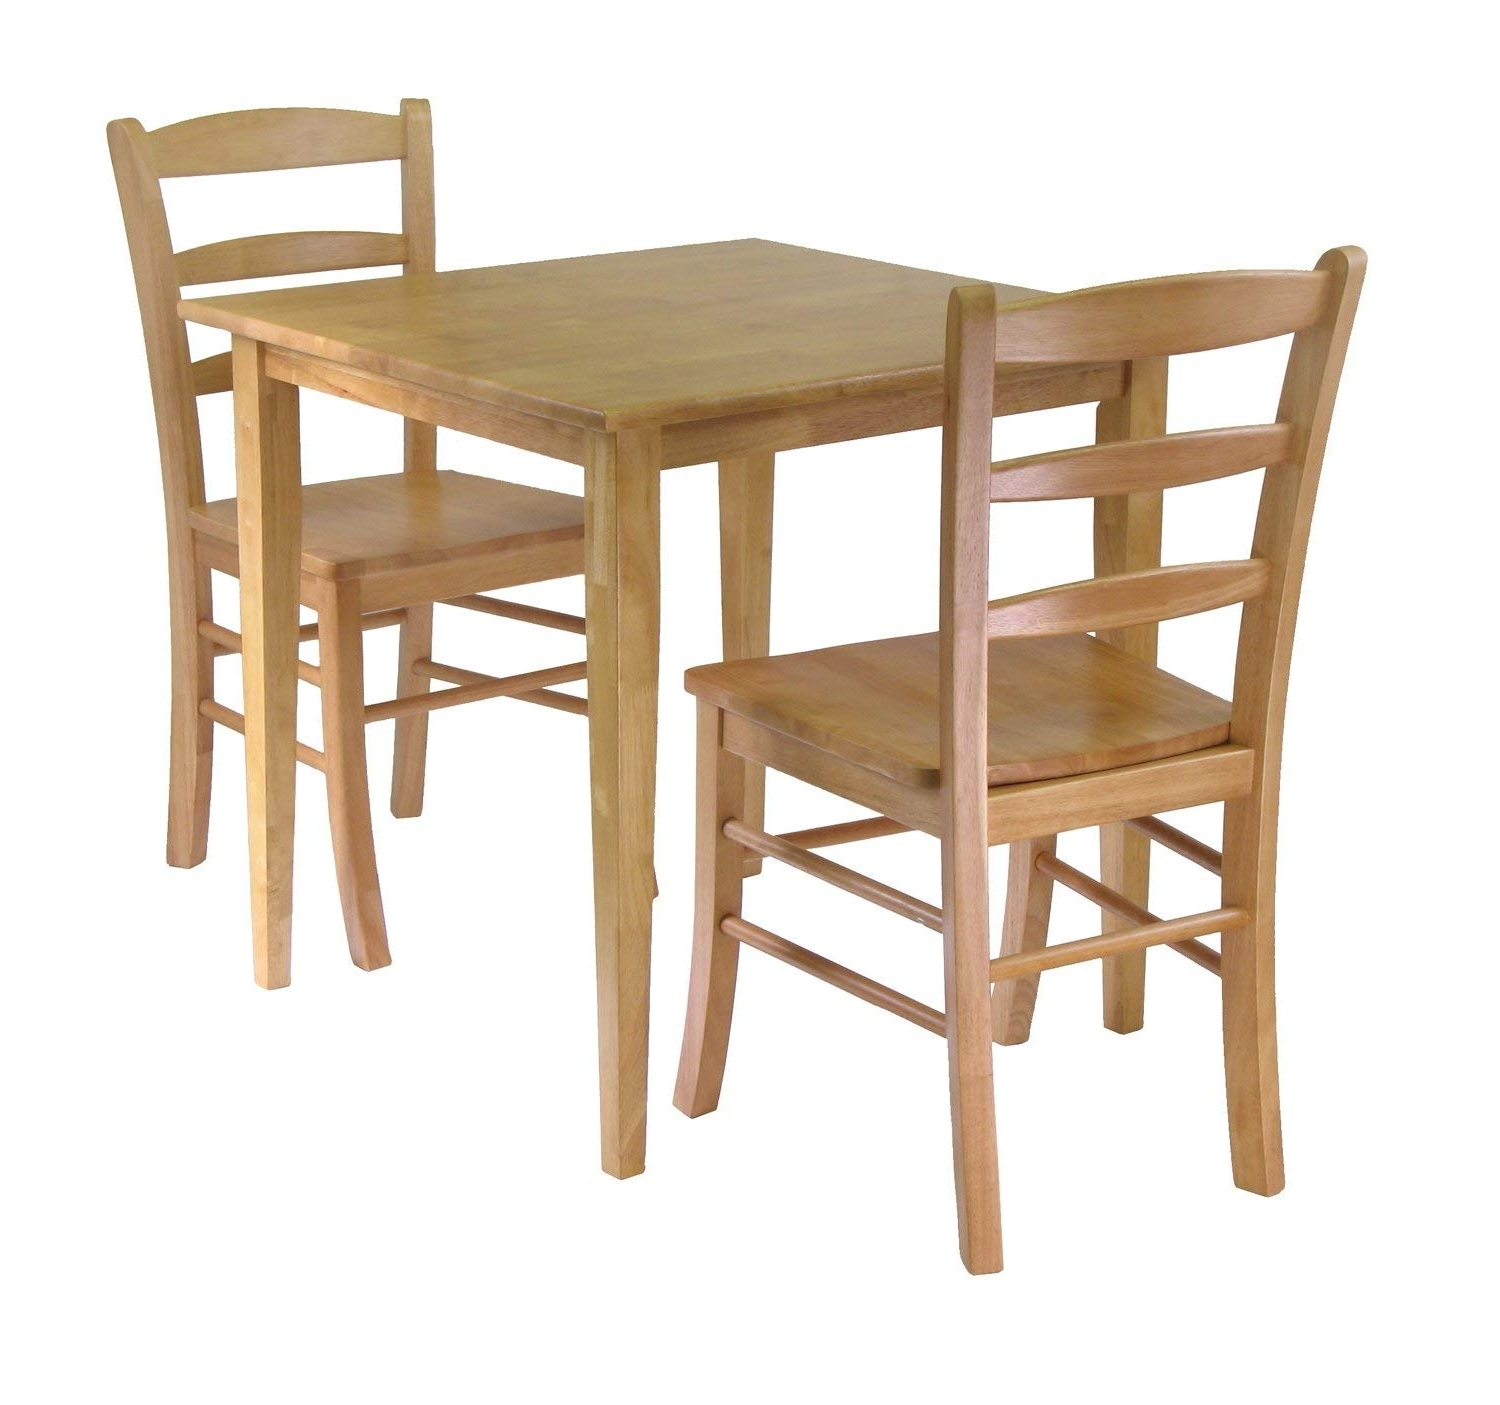 2018 Amazon – Winsome Groveland 3 Piece Wood Dining Set, Light Oak Throughout Small Extendable Dining Table Sets (View 20 of 25)